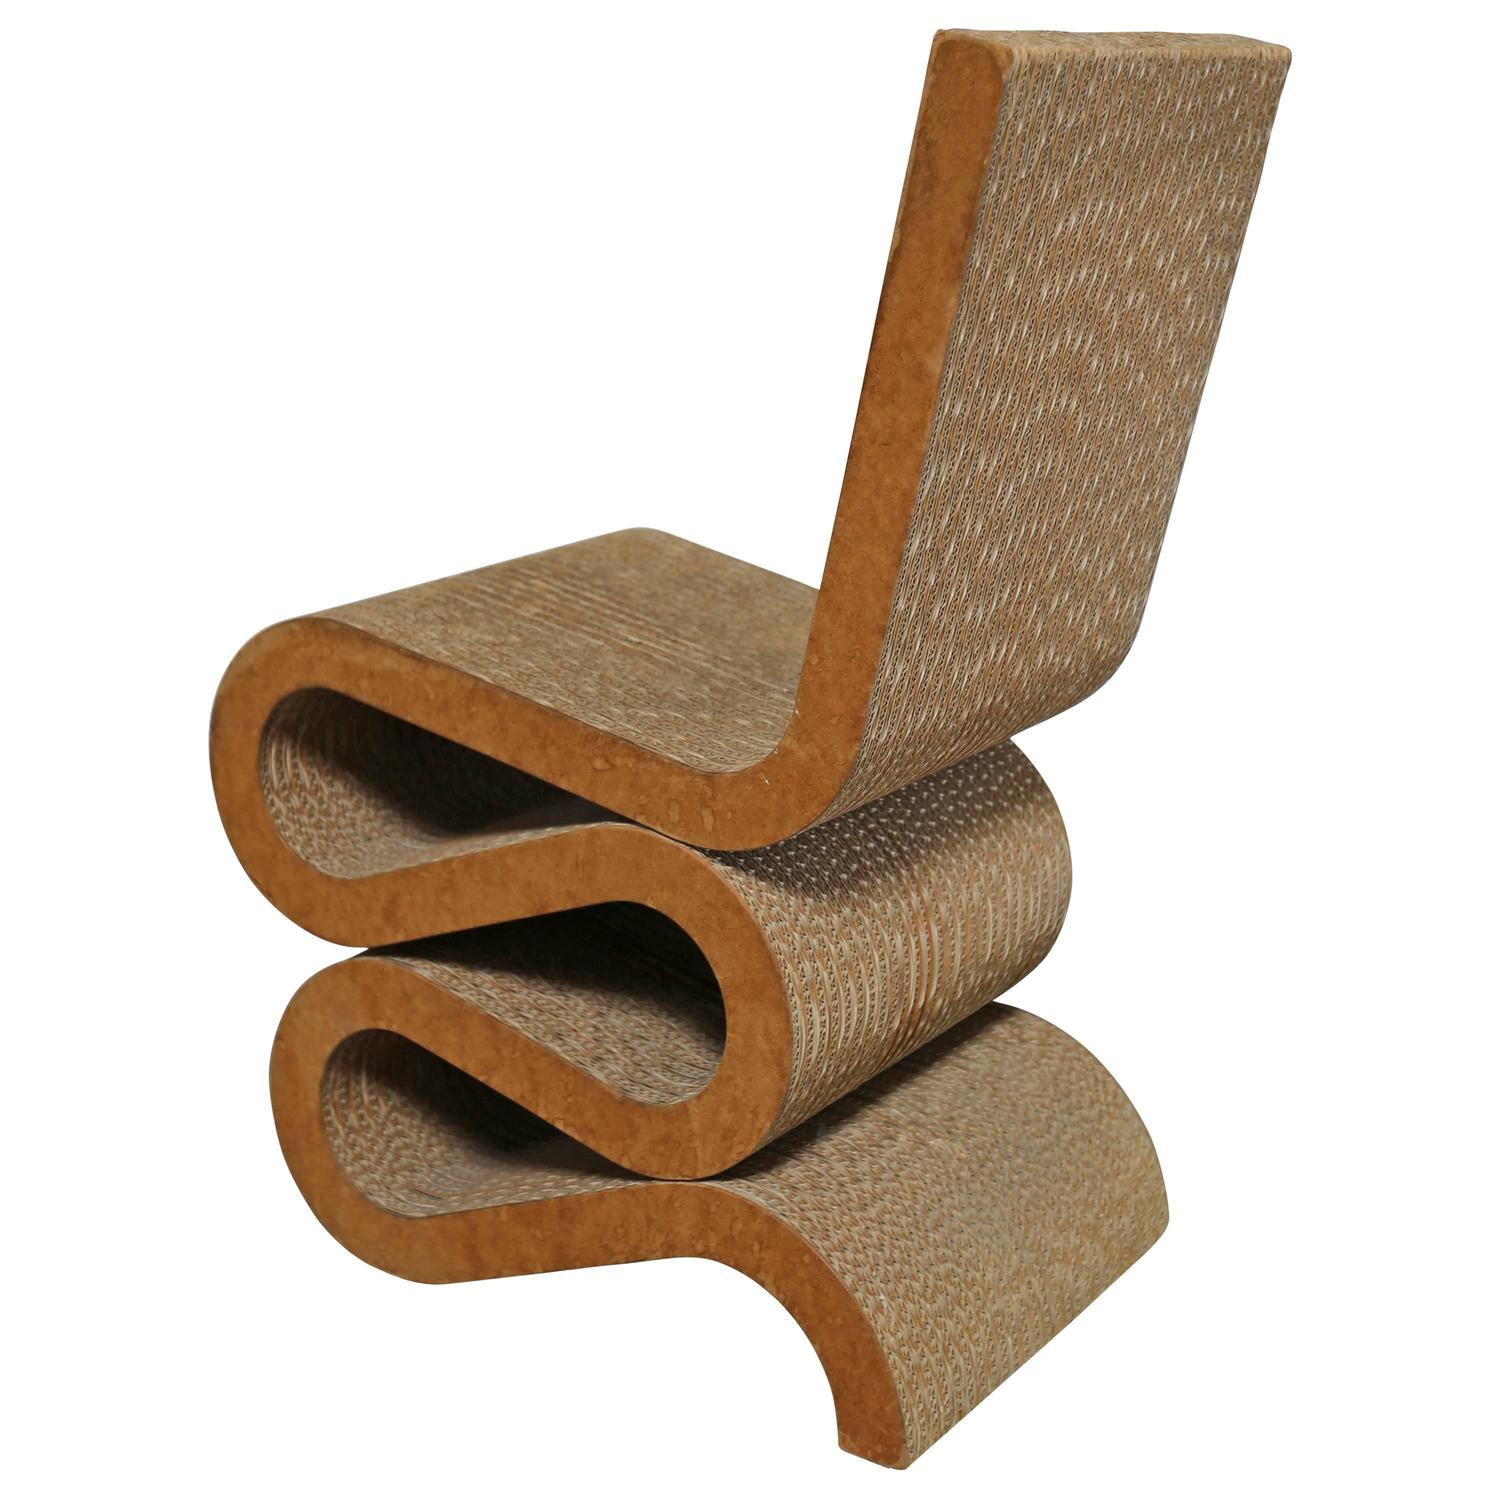 frank gehry chair front porch rocking chairs made in usa early quotwiggle quot by for sale at 1stdibs